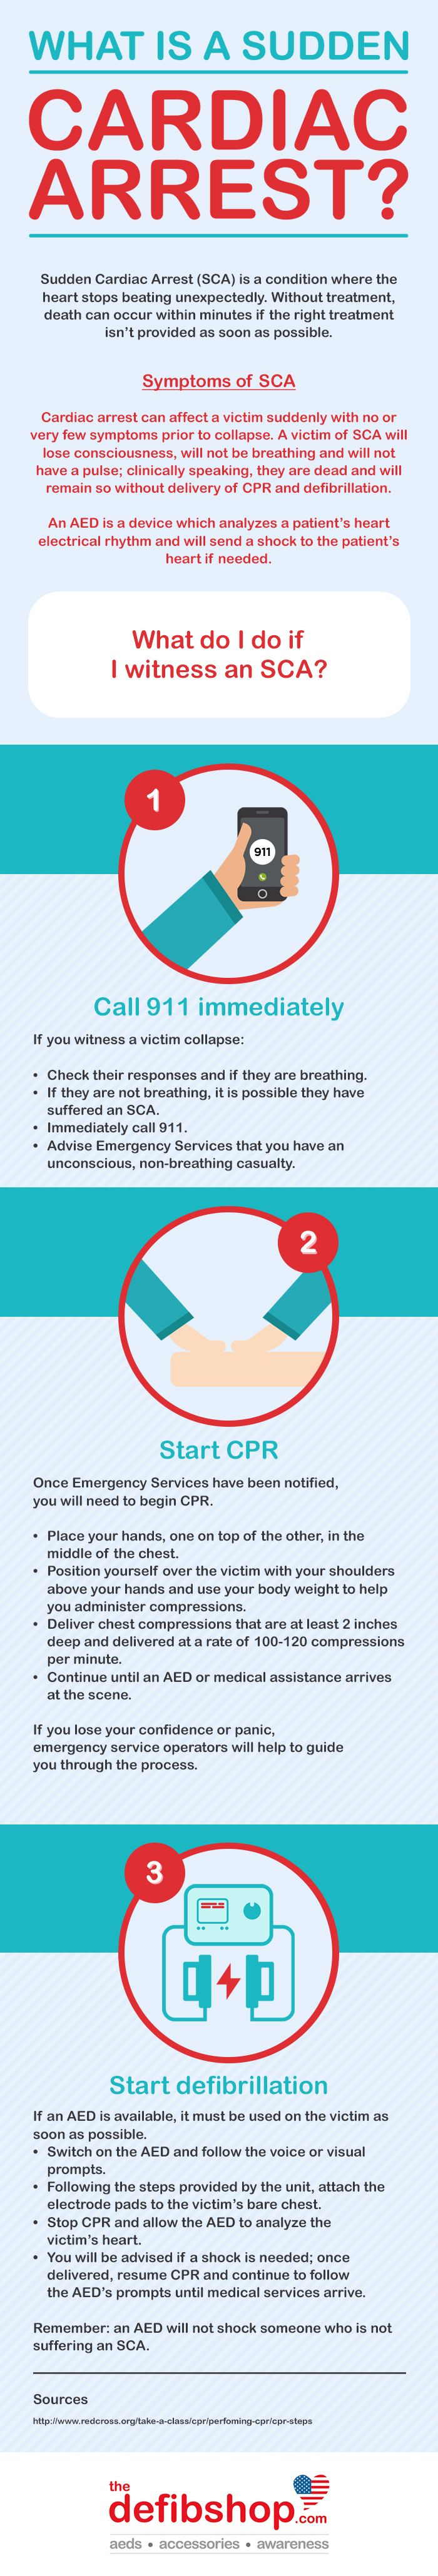 What is a Sudden Cardiac Arrest? And how do you treat it? Find out and share: